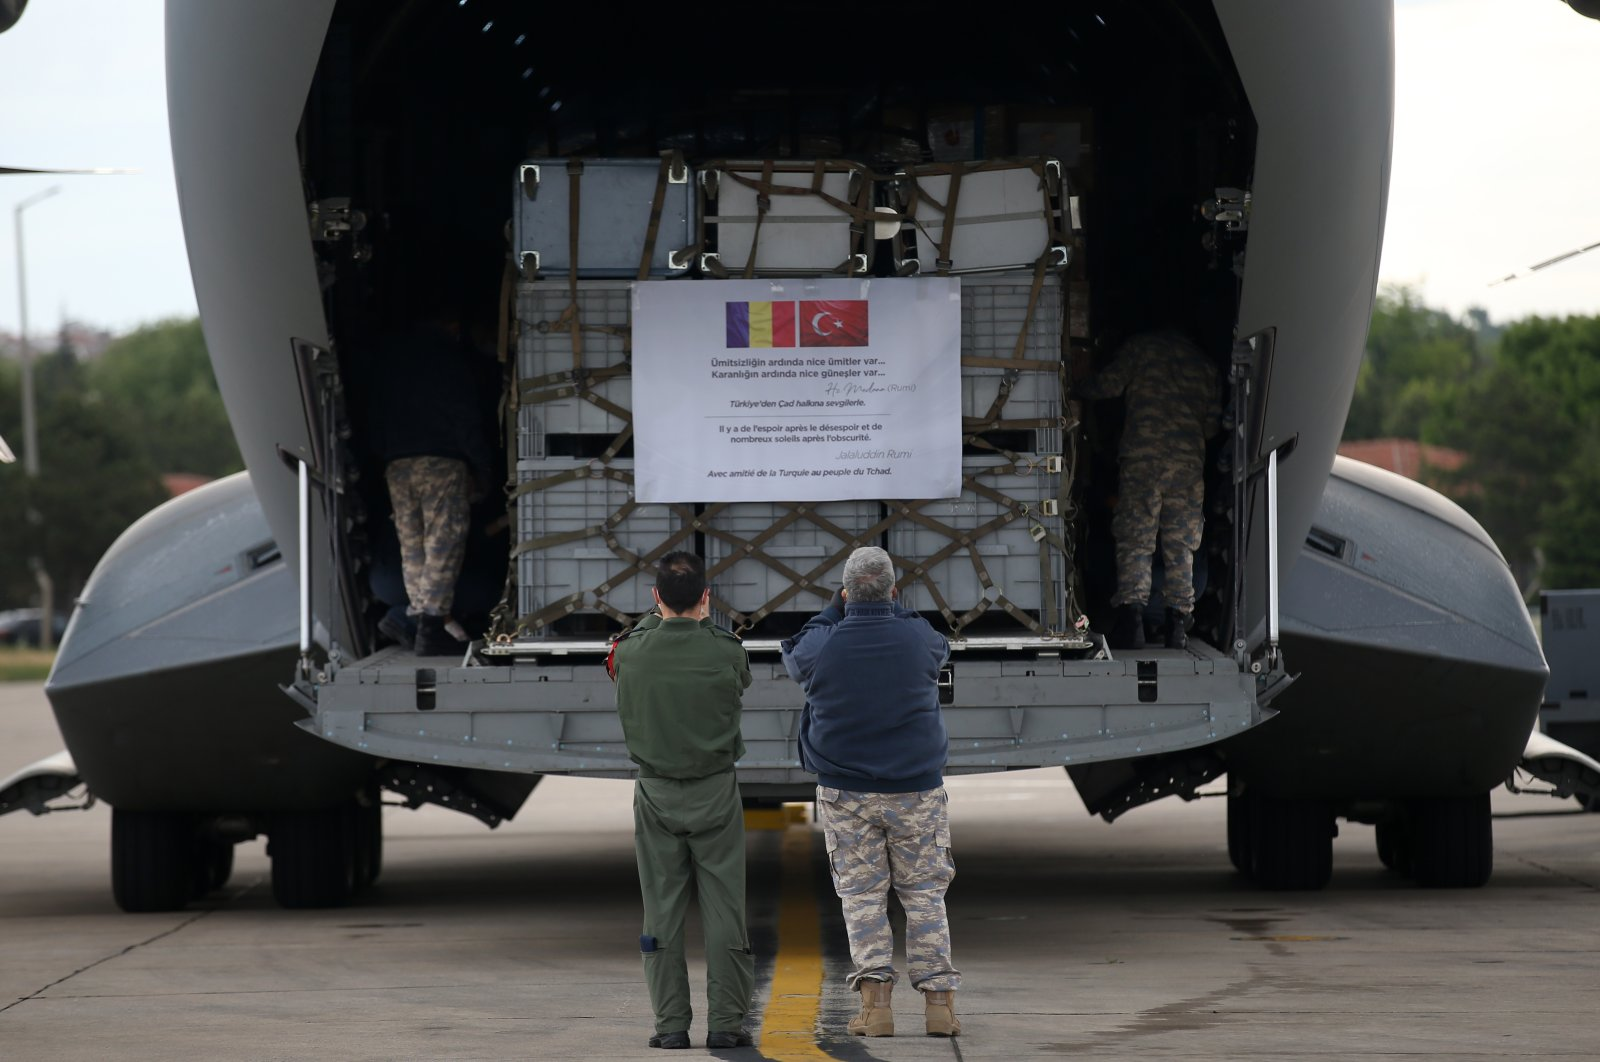 Medical aid destined for Chad is loaded onto a military cargo plane at Etimesgut airport in Ankara, Turkey, May 26, 2020. (AA Photo)